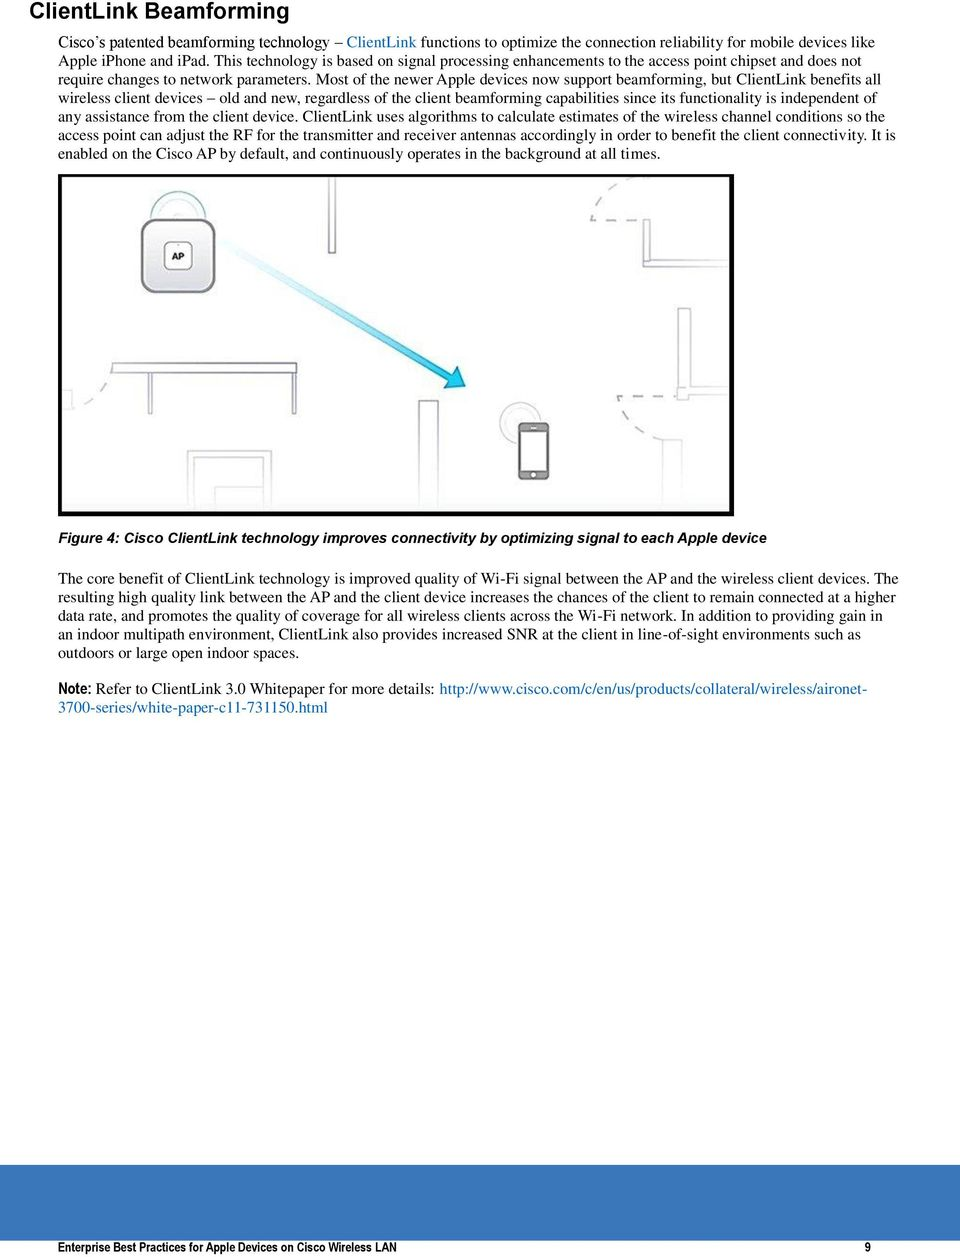 Enterprise Best Practices For Apple Devices On Cisco Wireless Lan Pdf Diagram Most Of The Newer Now Support Beamforming But Clientlink Benefits All Client